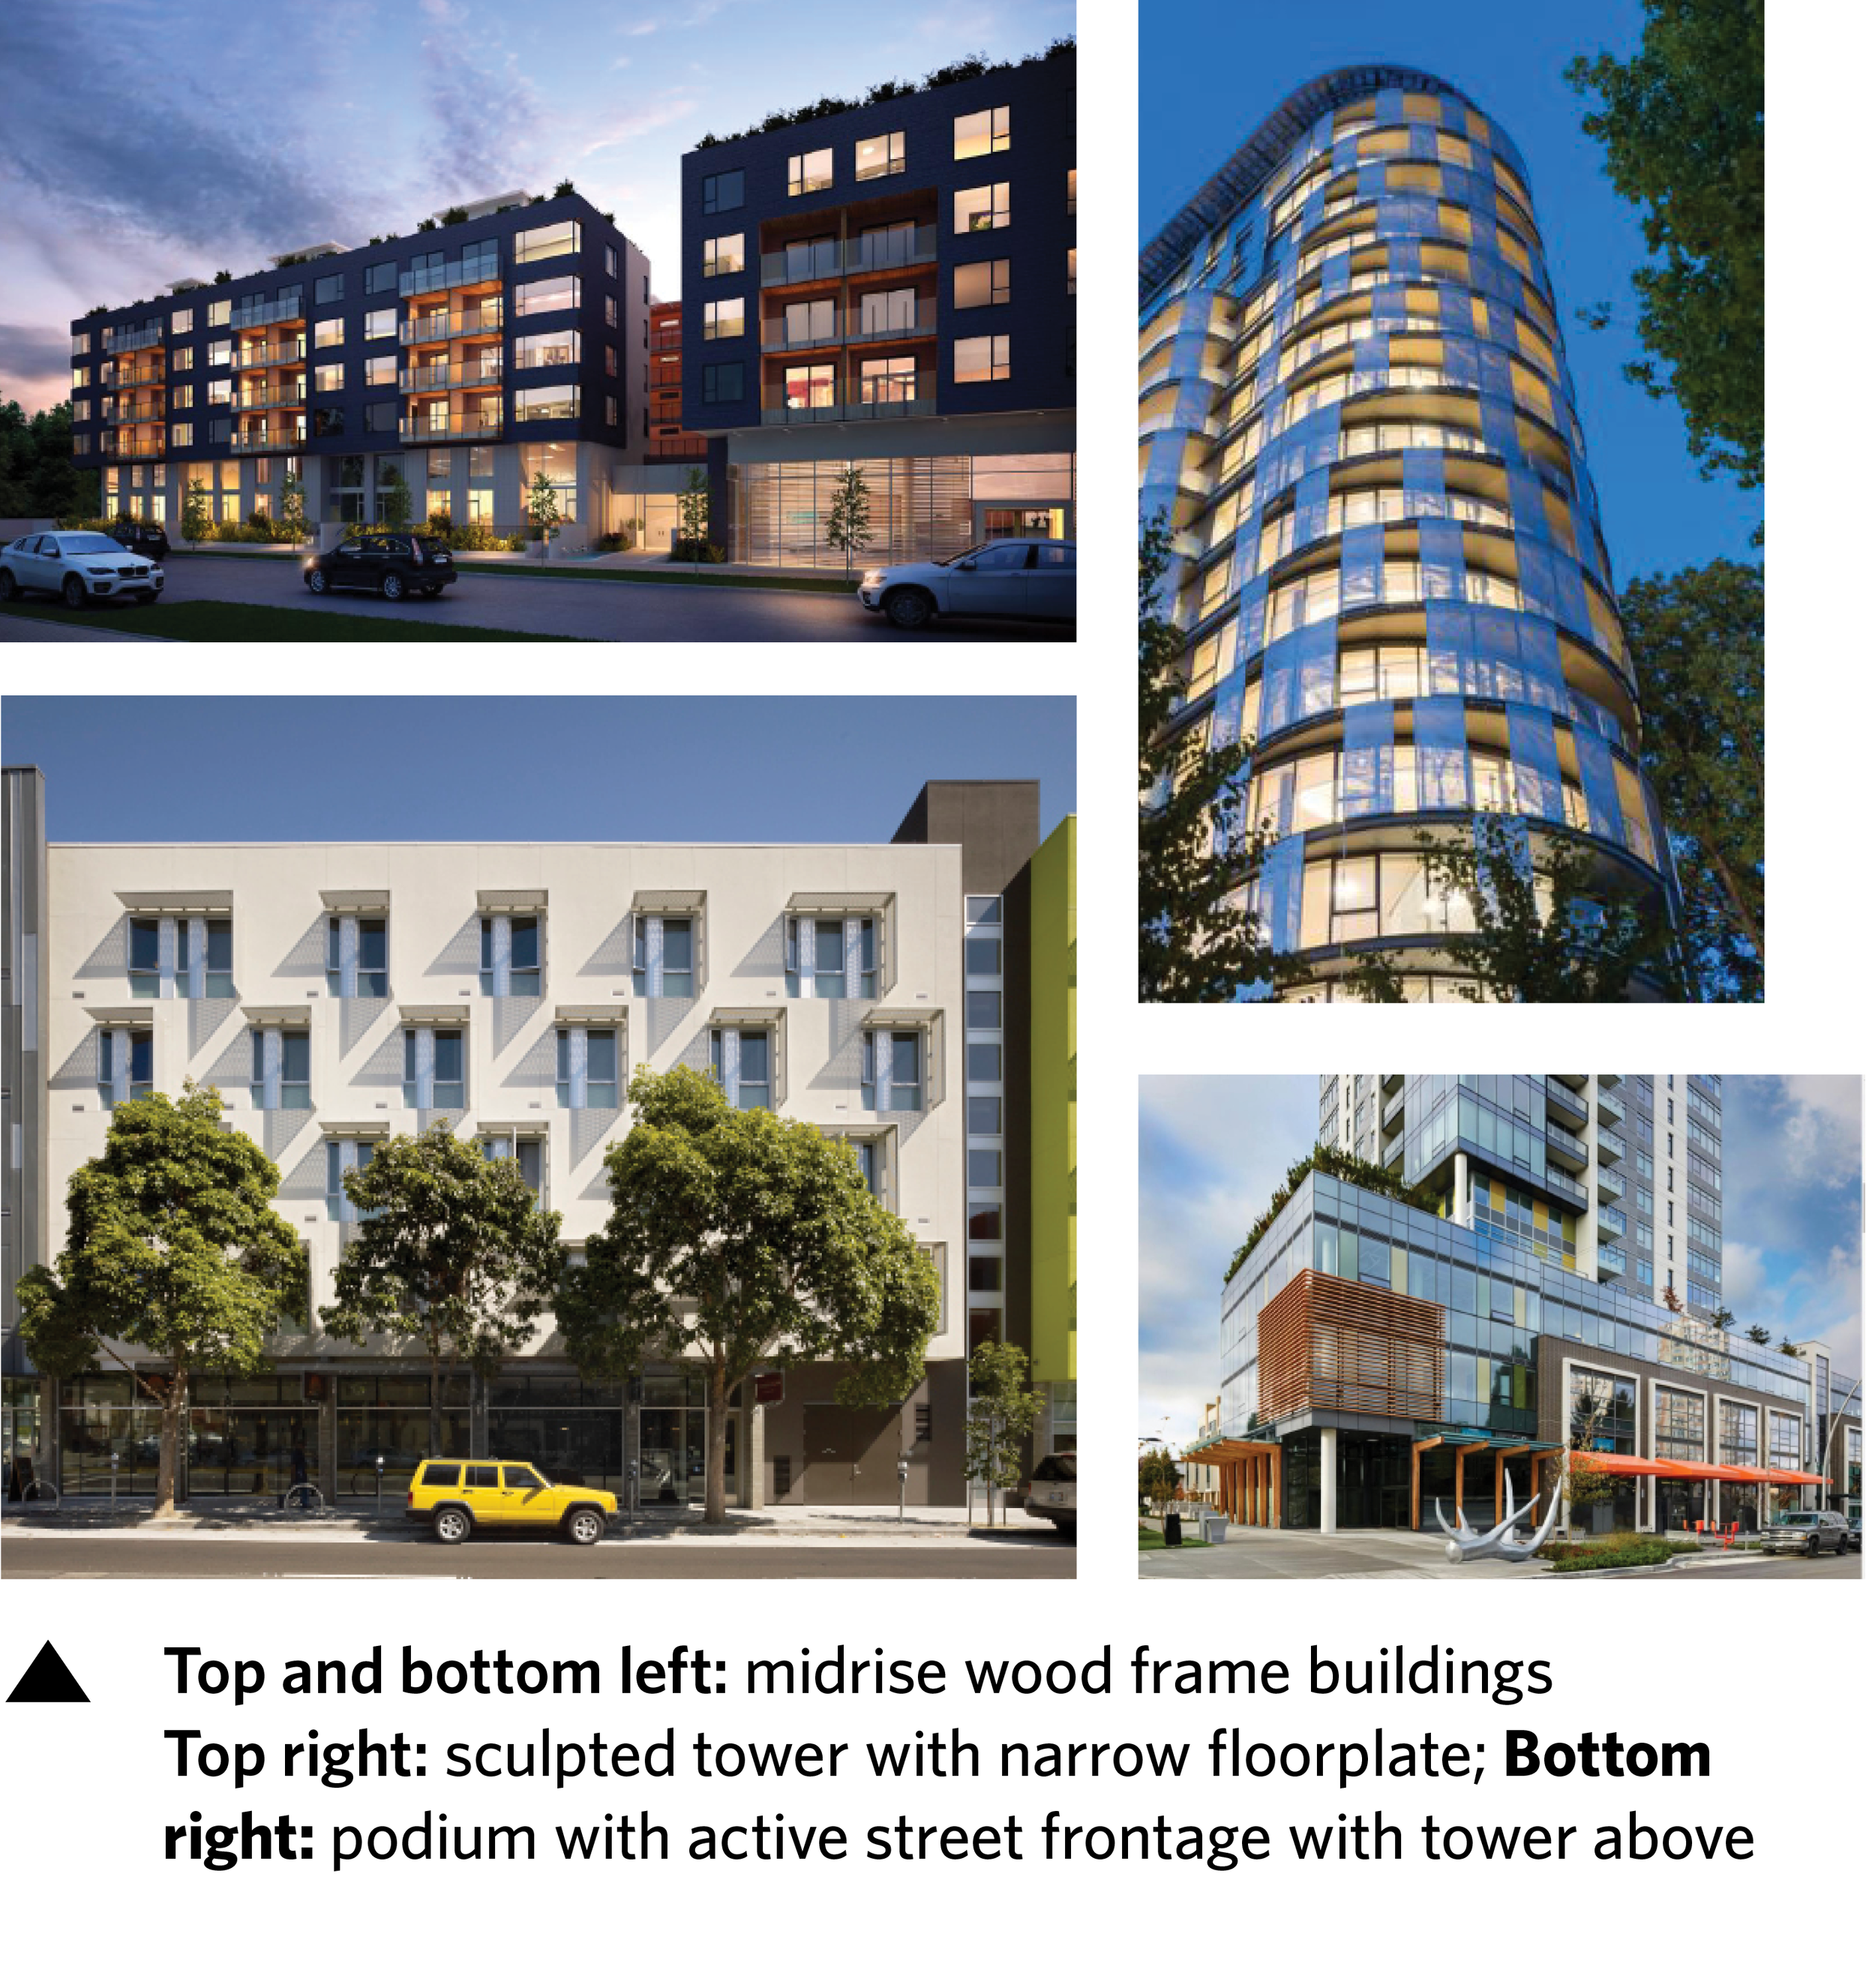 - Why tall buildings?Tall buildings locate density on strategic sites, freeing up more area for midrise, affordable housing and open space. They also optimize value for the leasehold sites to support the Endowment.Why 6-to-8 storey woodframe?Woodframe construction is affordable and sustainable. Current building code allows a maximum of 6 storeys in woodframe construction, however looking to Building Code updates, we can see a future where 8 storeys is safely and efficiently achievable. The goal of the Plan is to be flexible, allowing for possible height variation while maintaining affordability and increasing open space.